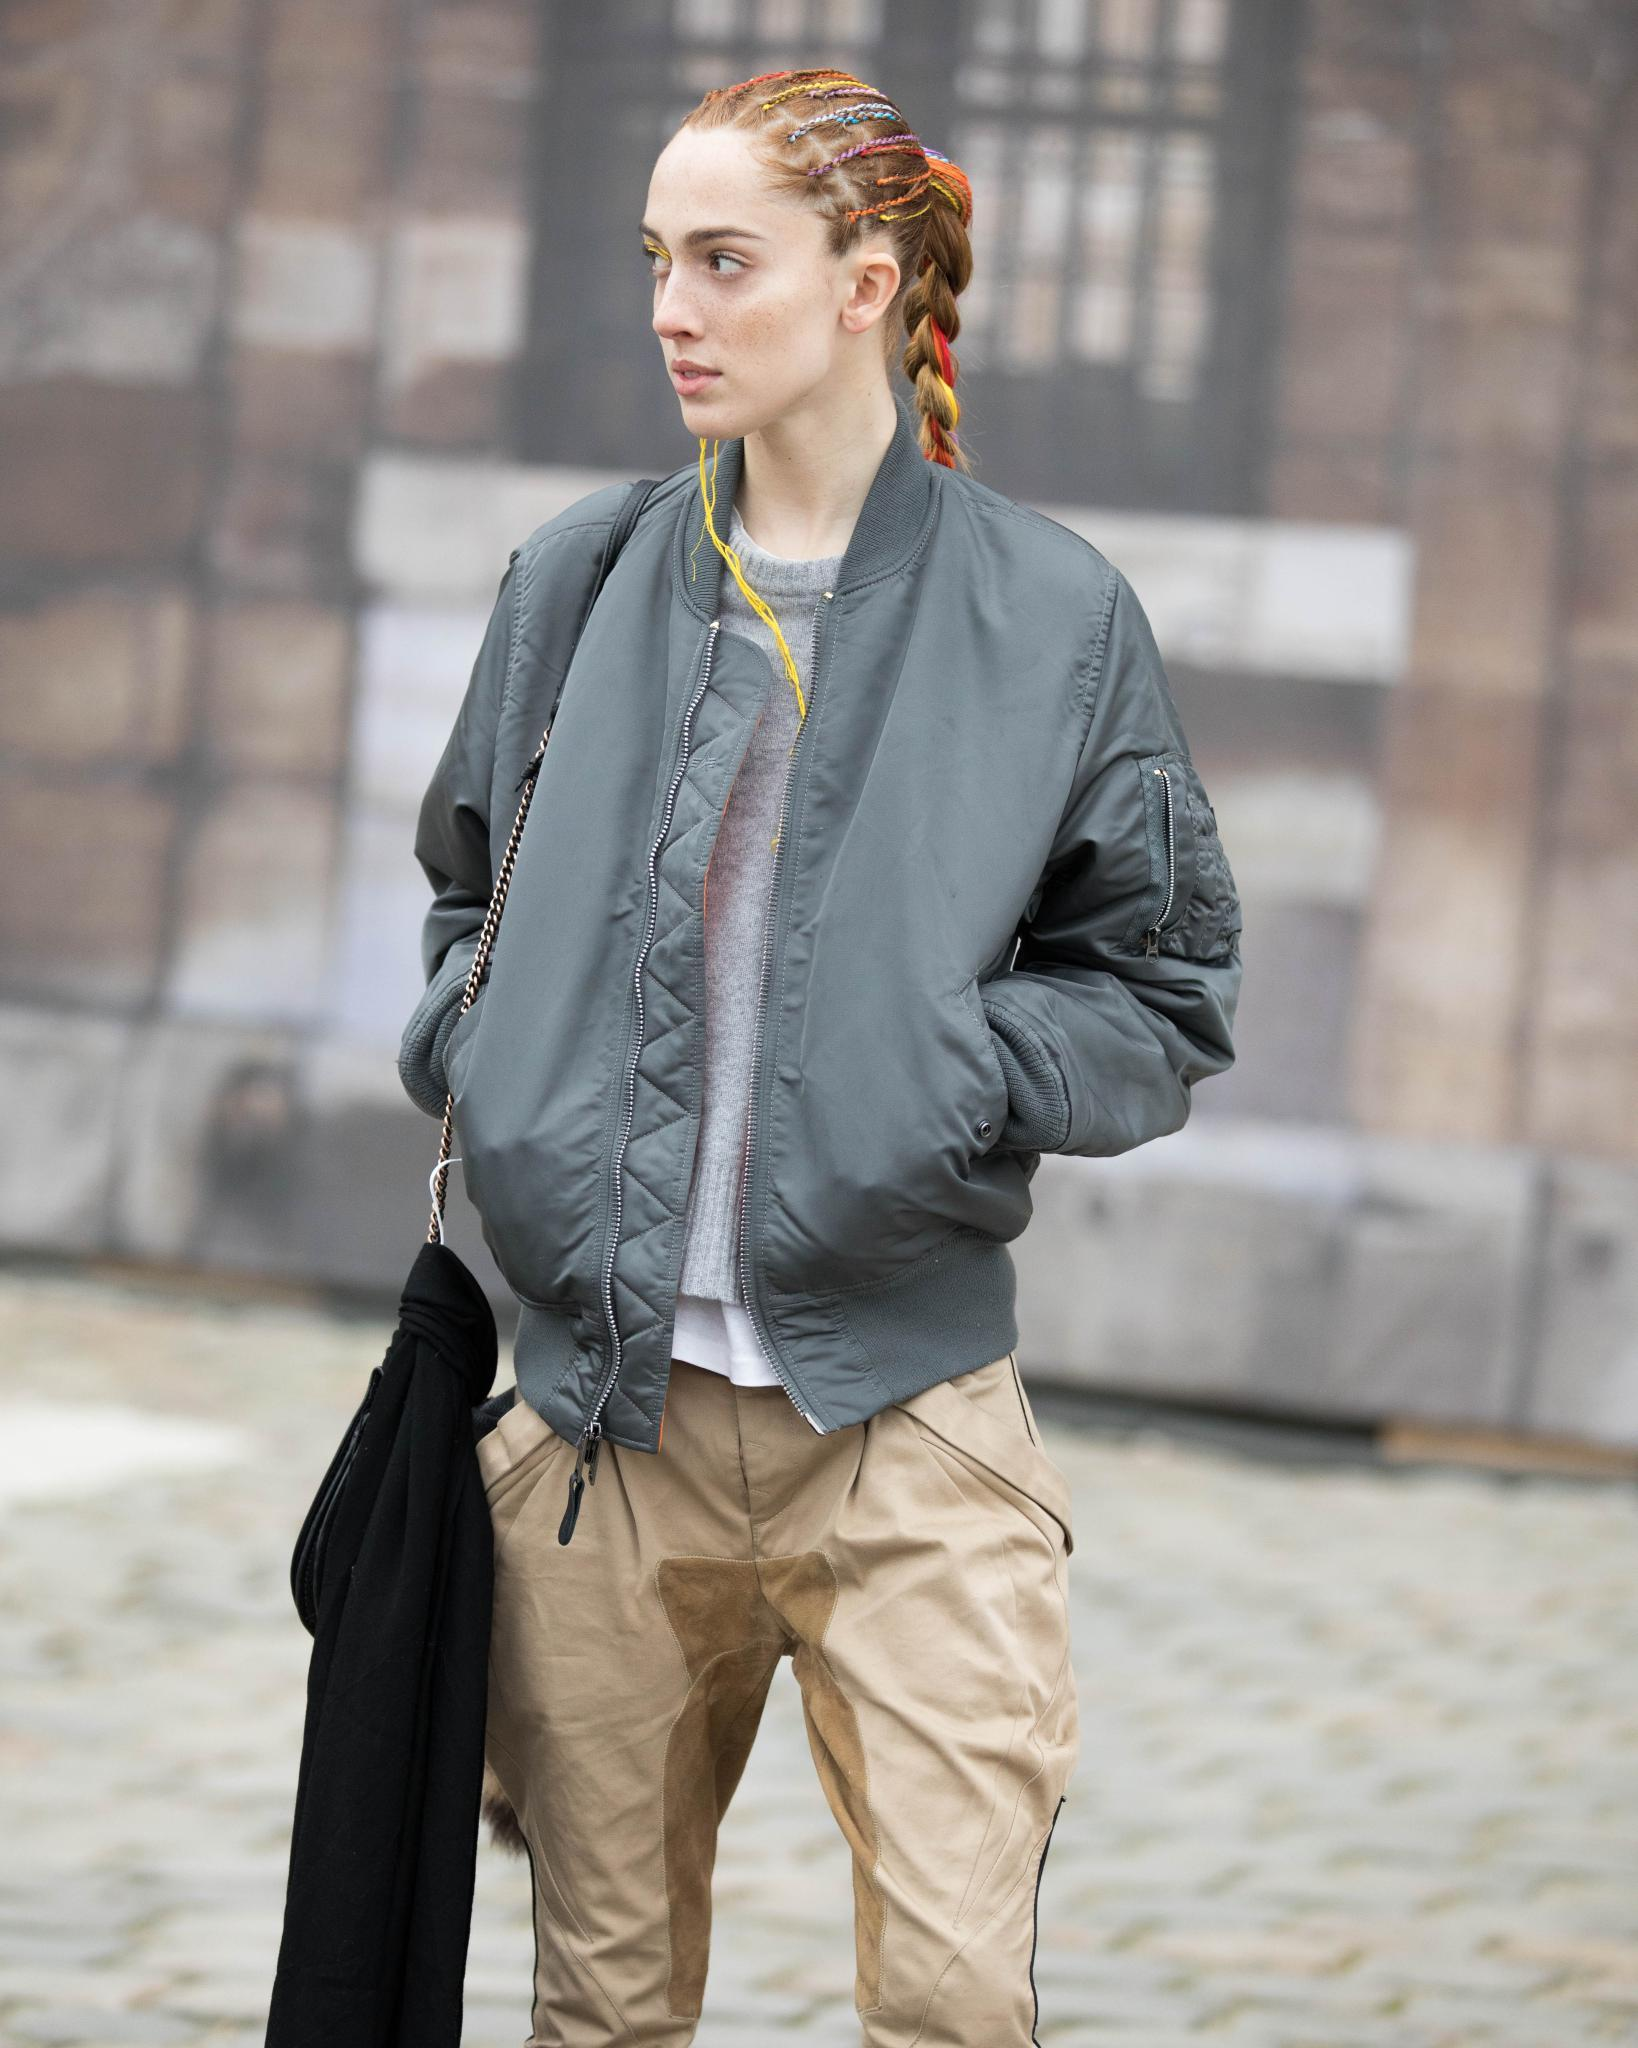 young model with box braid ponytail hairstyle